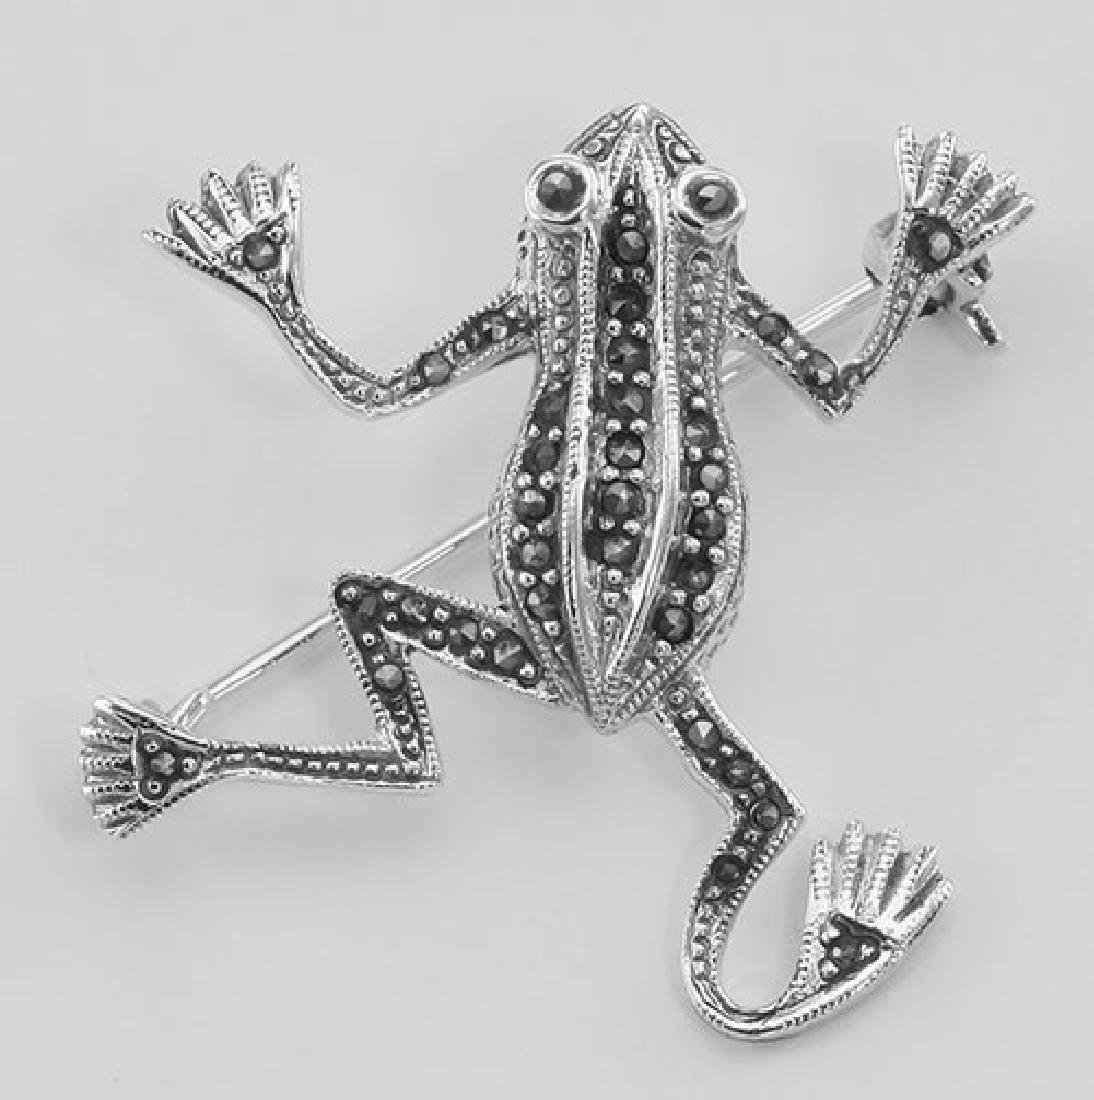 Cute Marcasite Frog Pin / Brooch - Sterling Silver